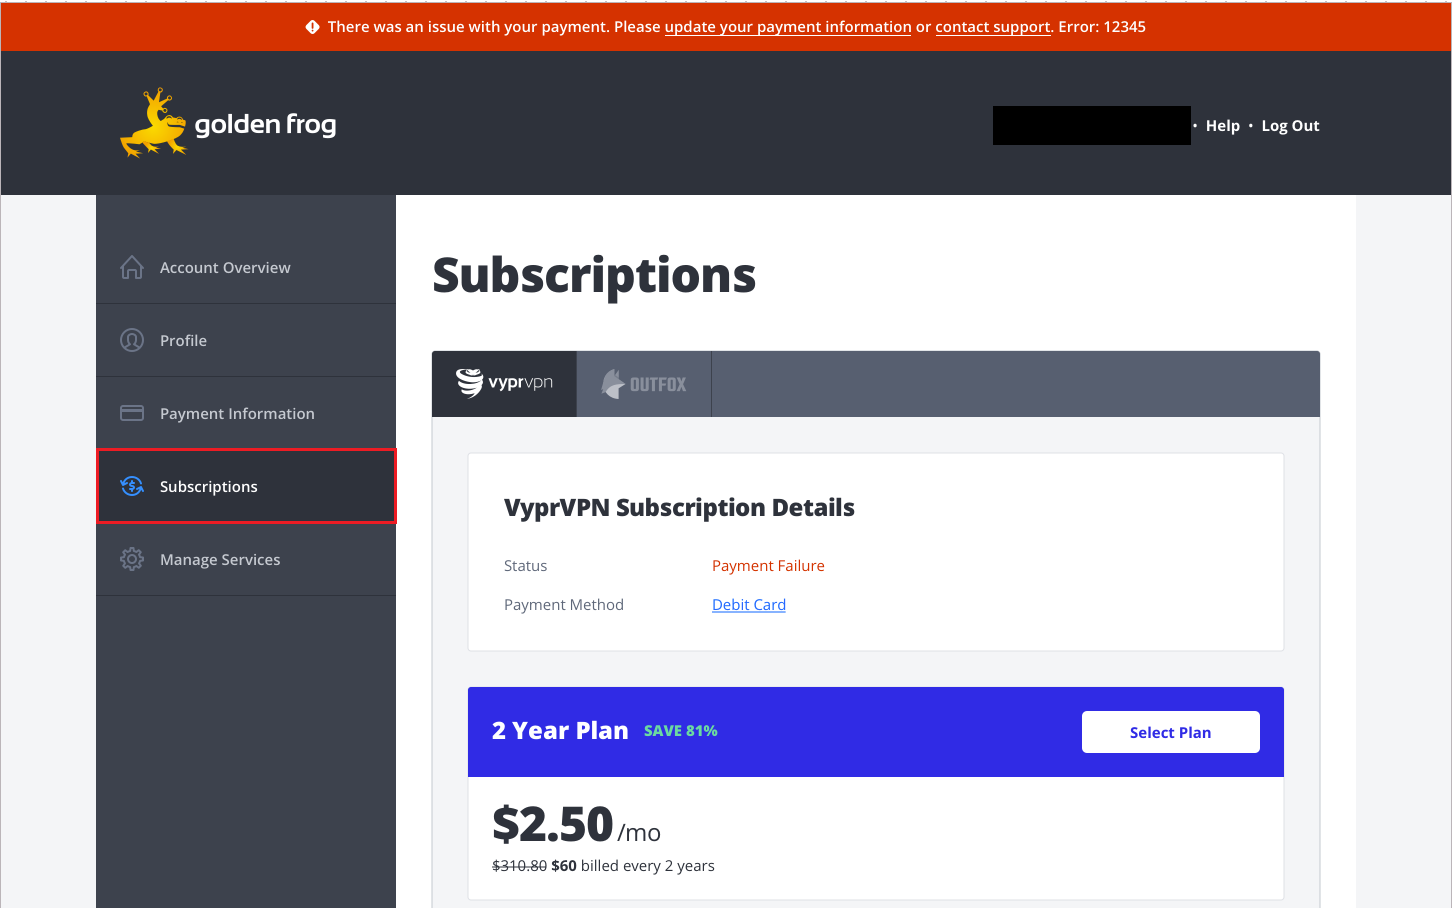 Subscriptions_-_Account_Locked_Update_Payment_Information_-_Subscriptions_selected.png